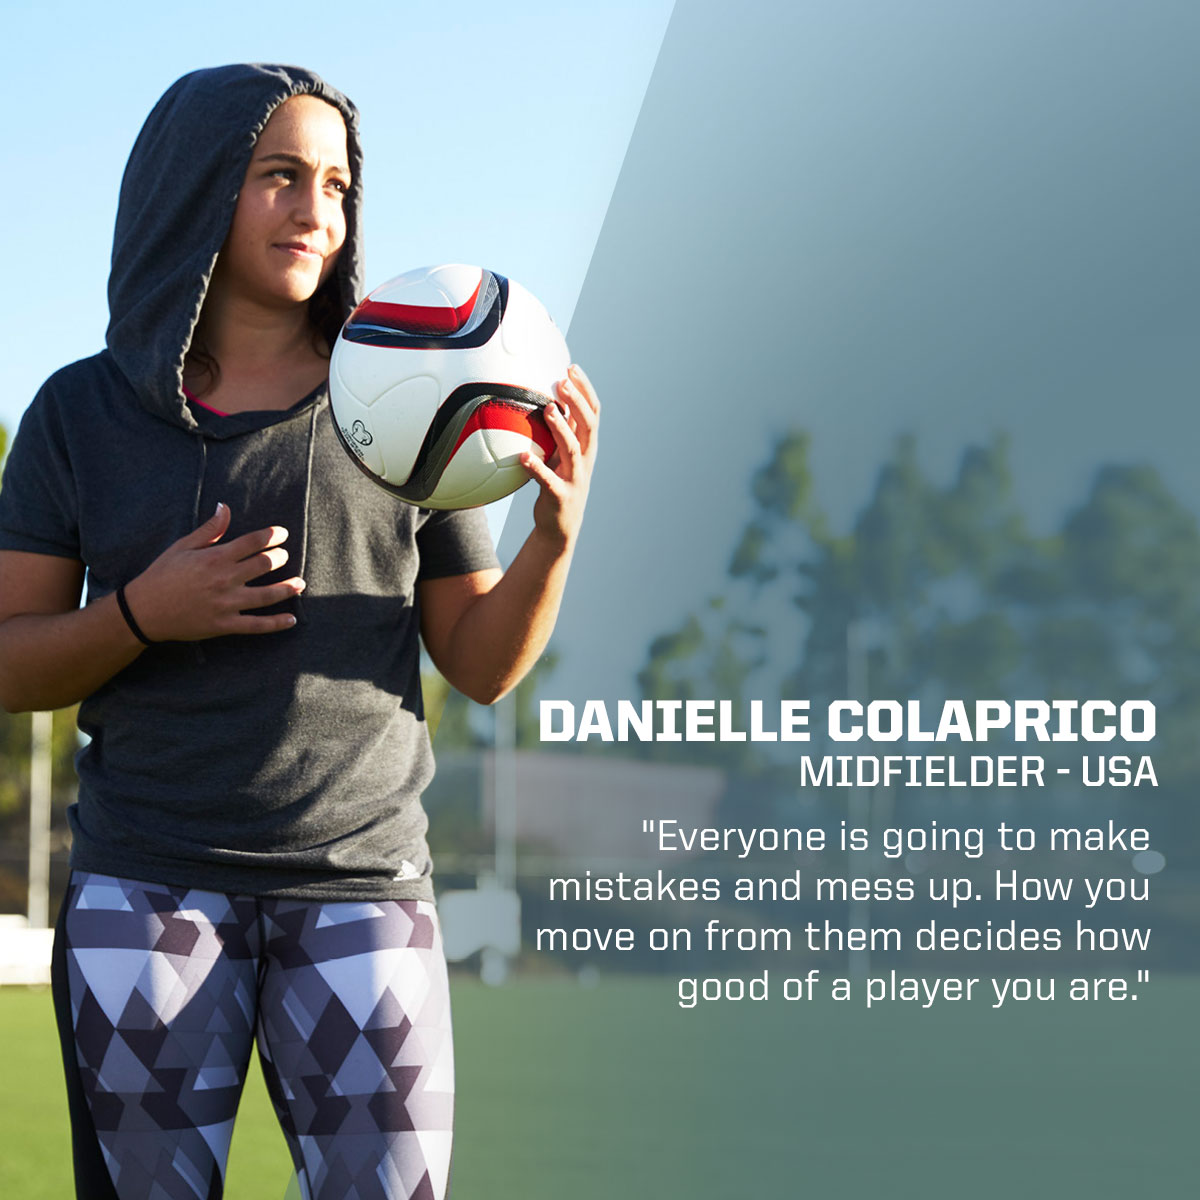 The Secret Behind The Rise Of Danielle Colaprico